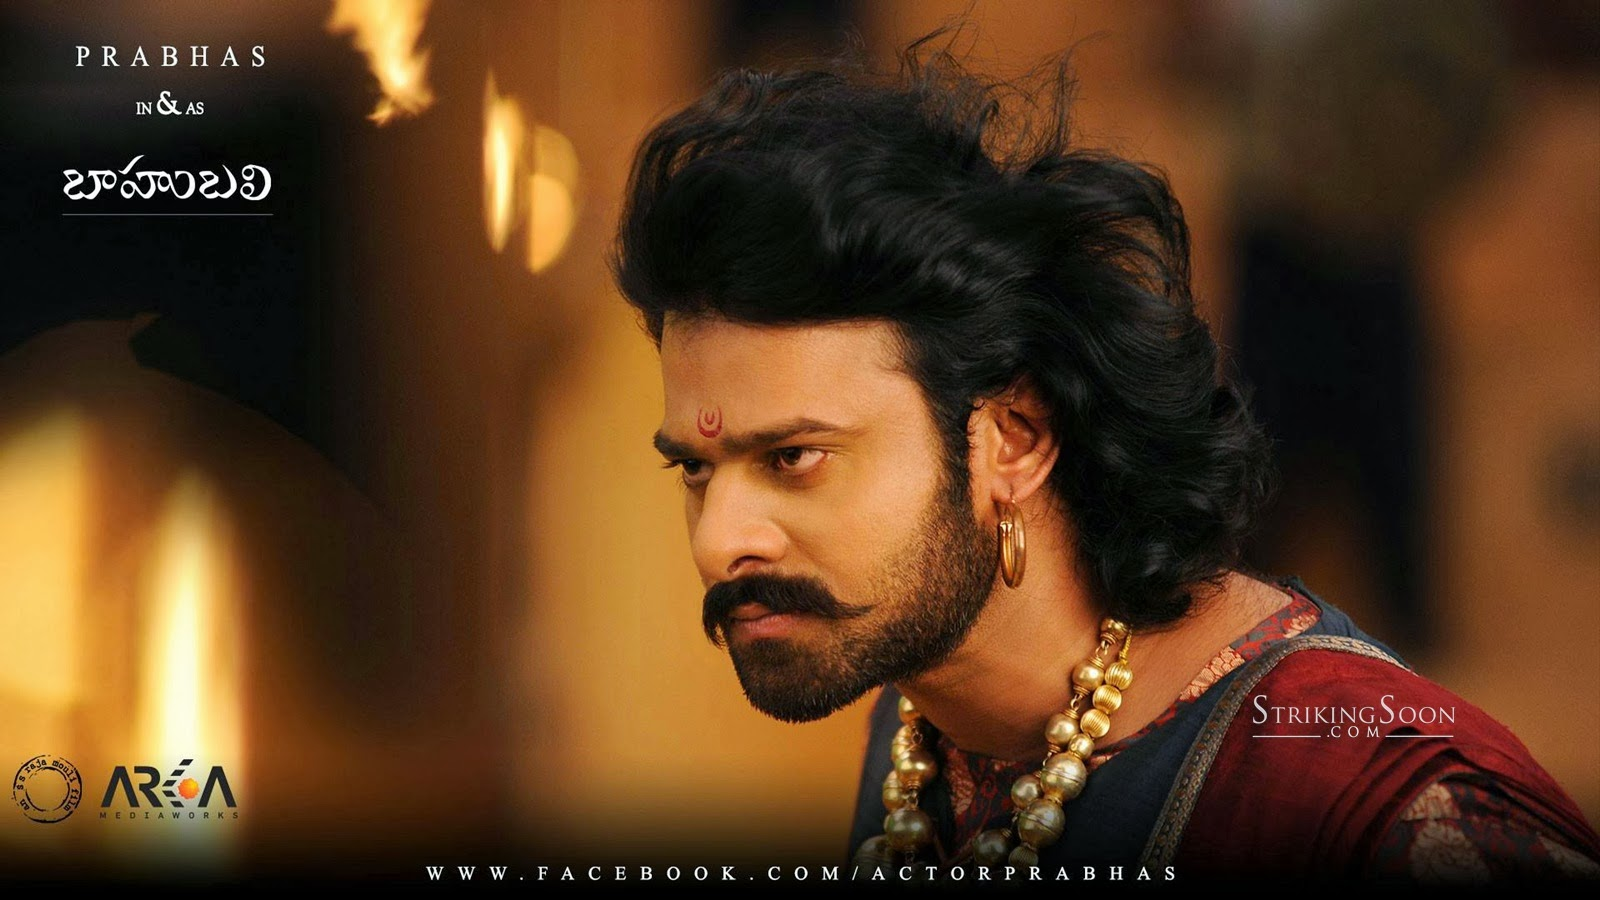 bahubali movie wallpapers ,prabhas baahubali film official images